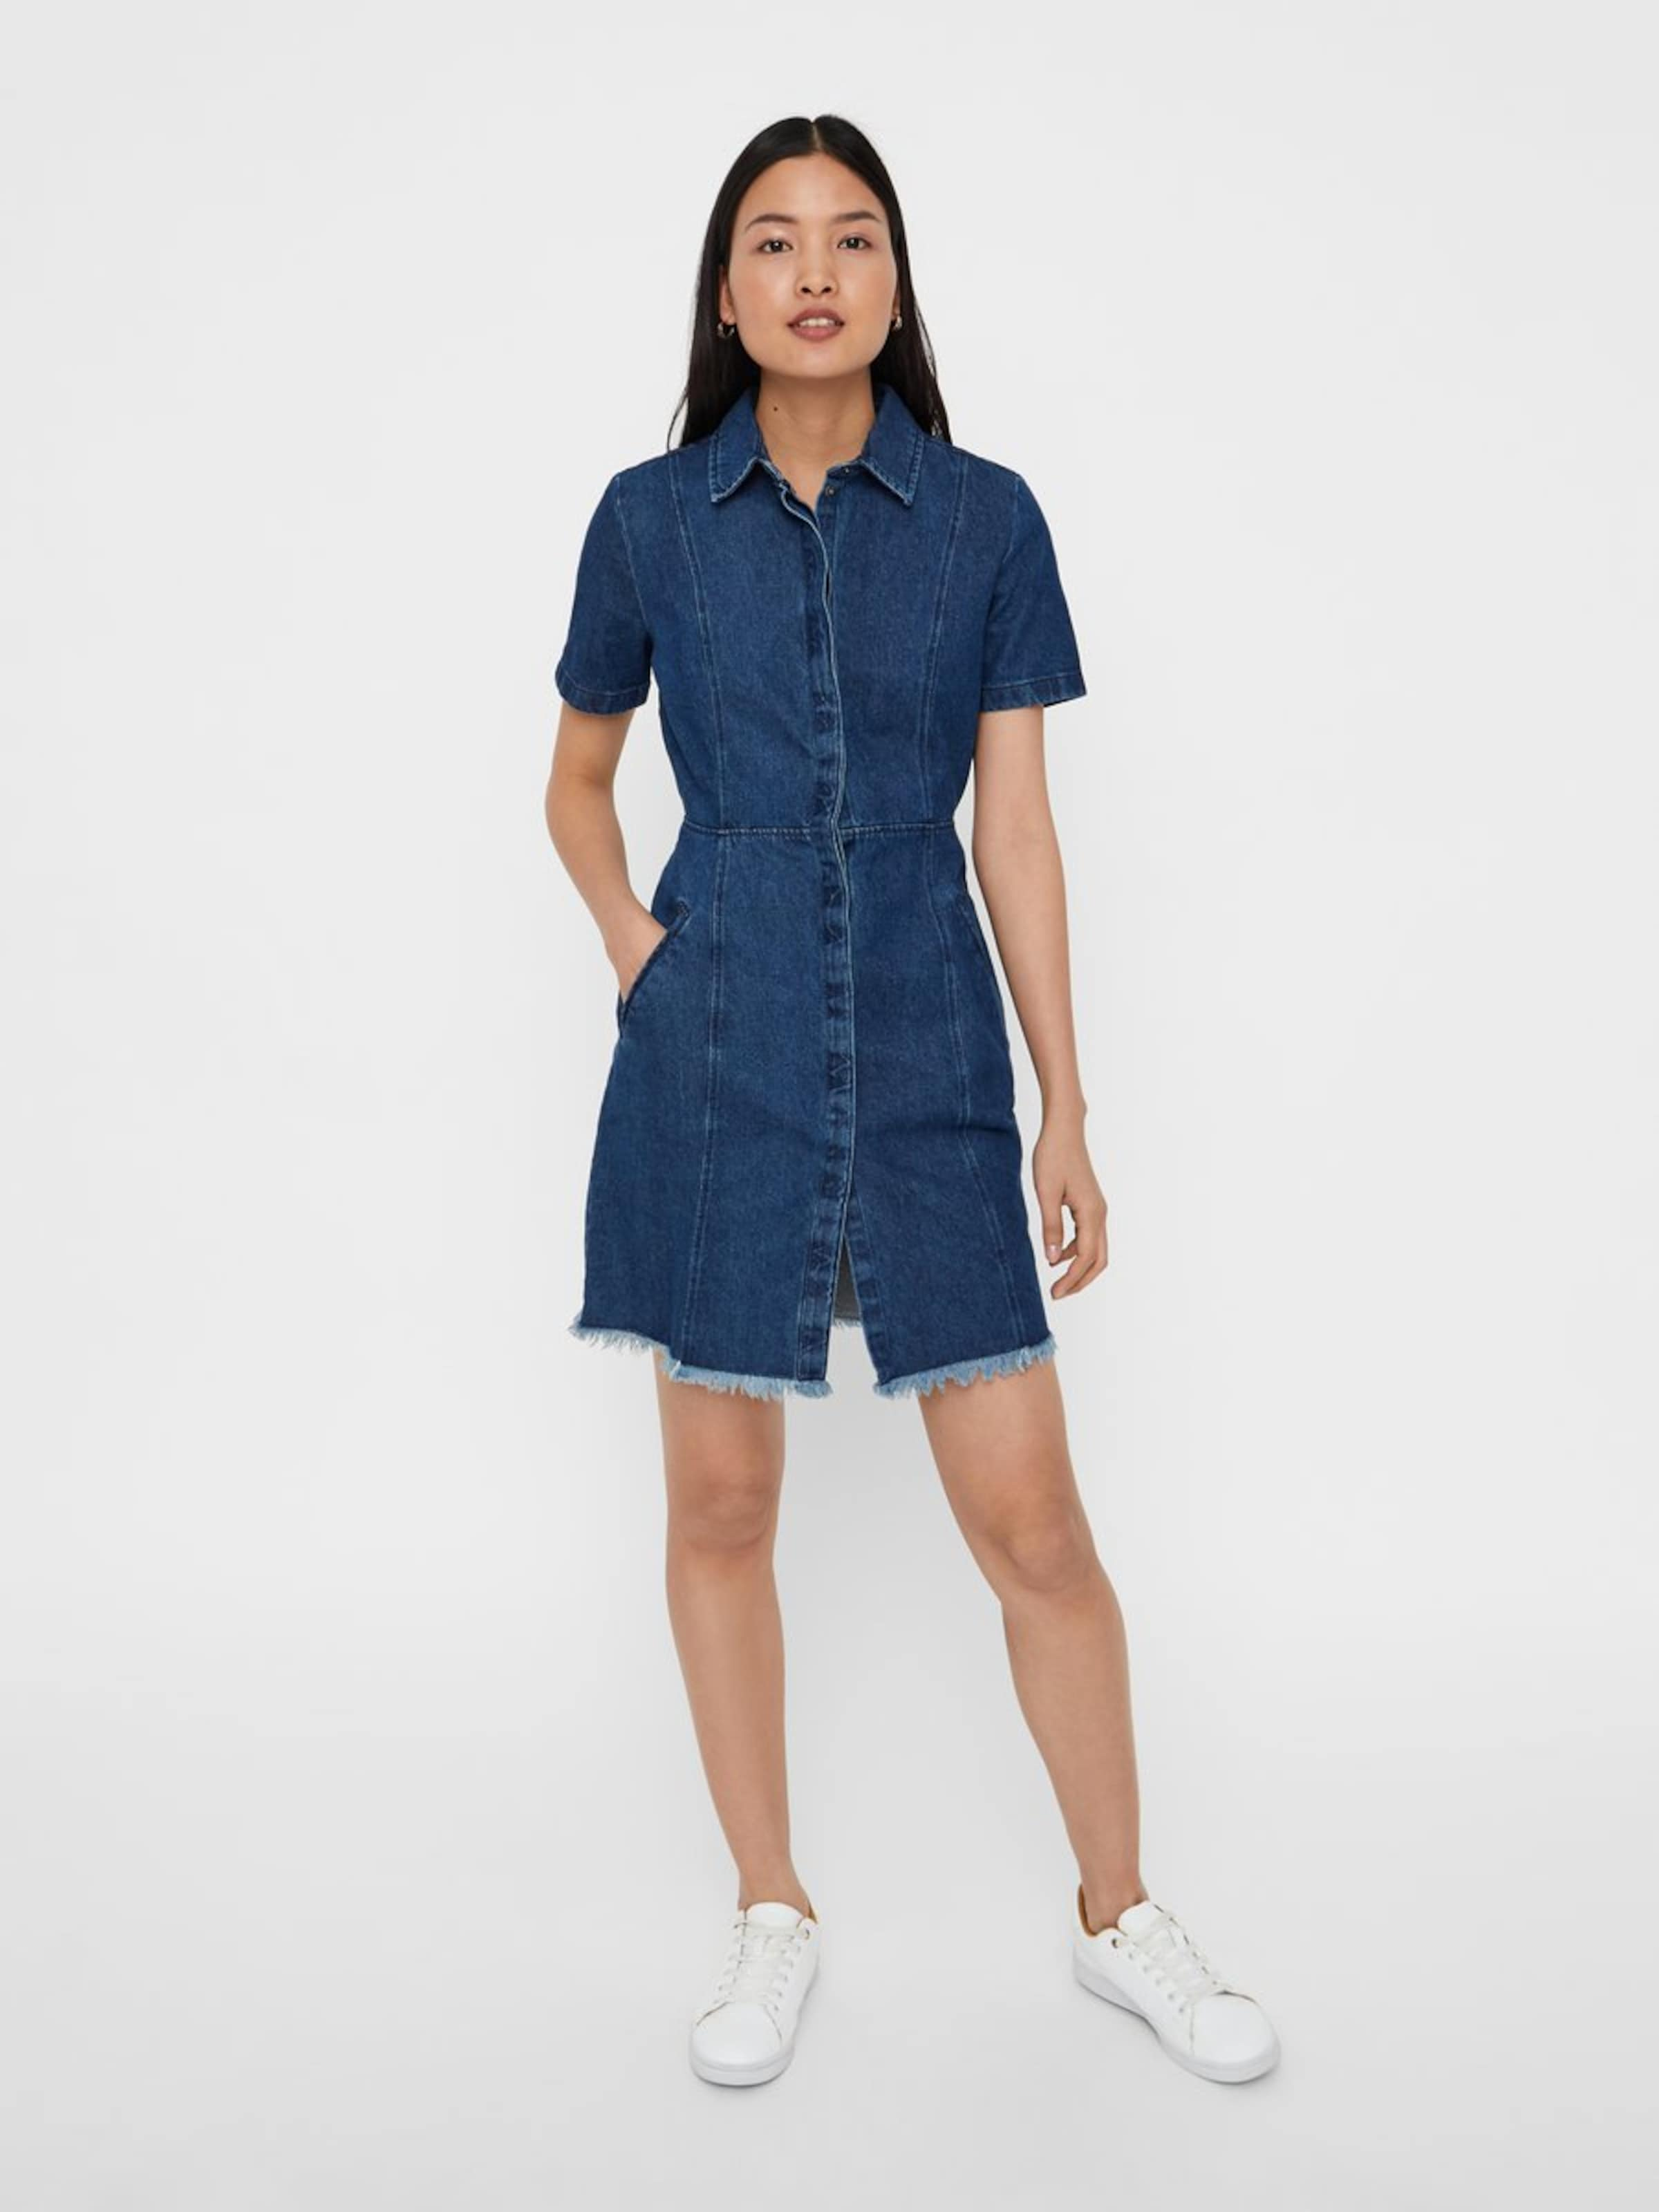 Jurk In May Denim Noisy Blauw Z8OPnN0wkX